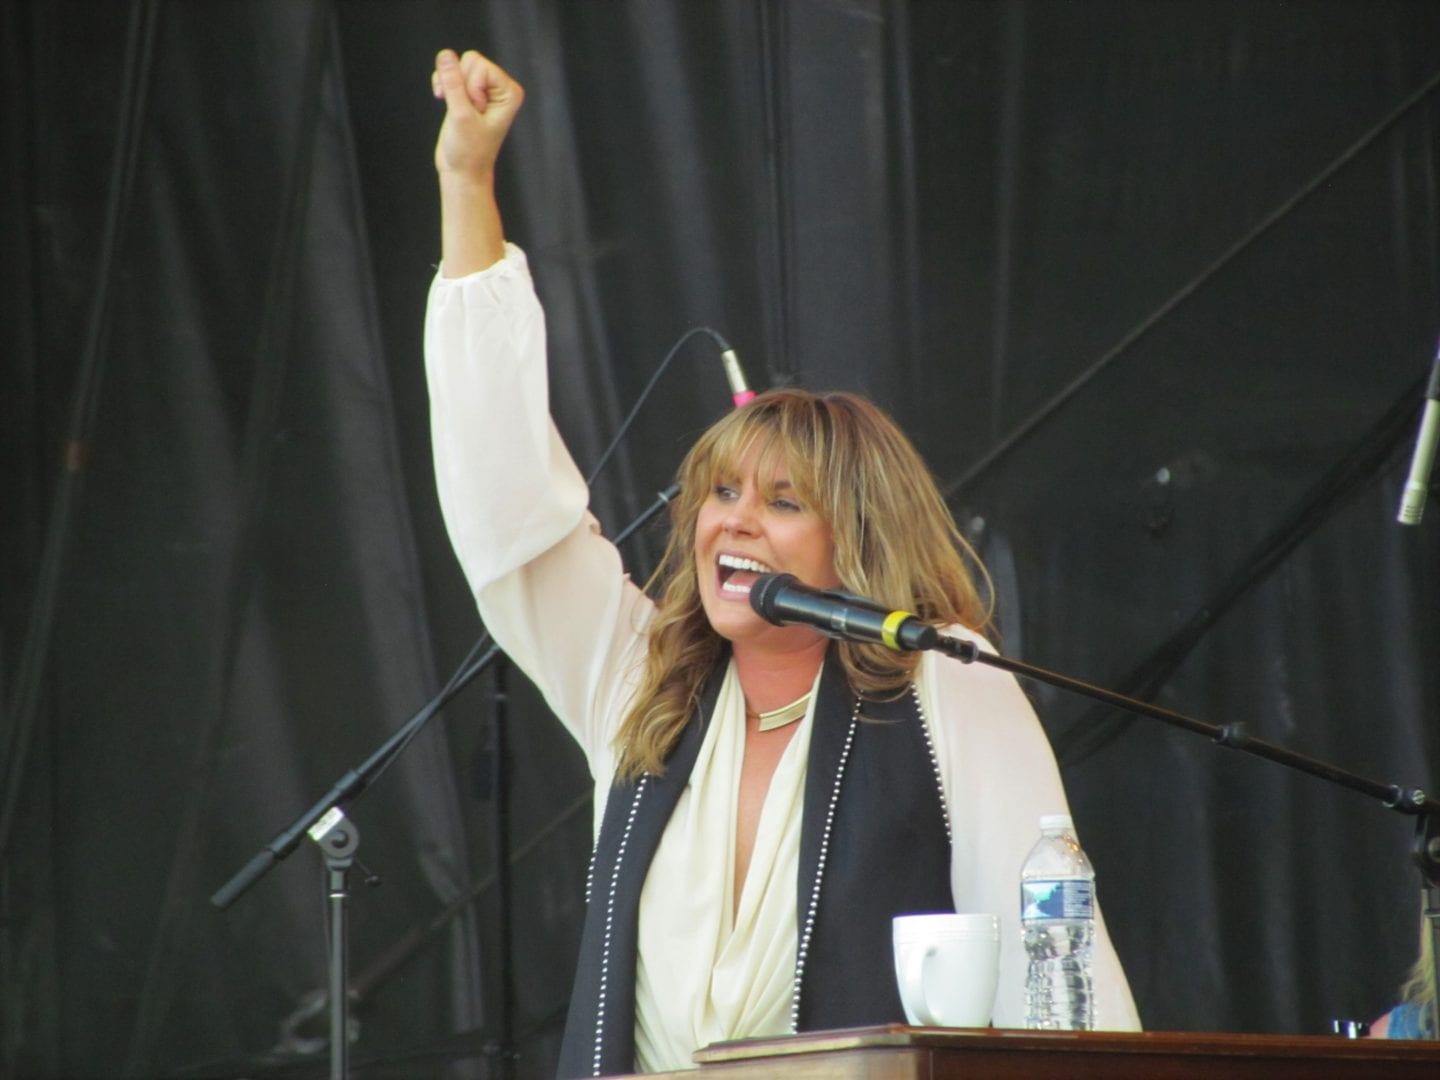 Grace Potter talking at the microphone